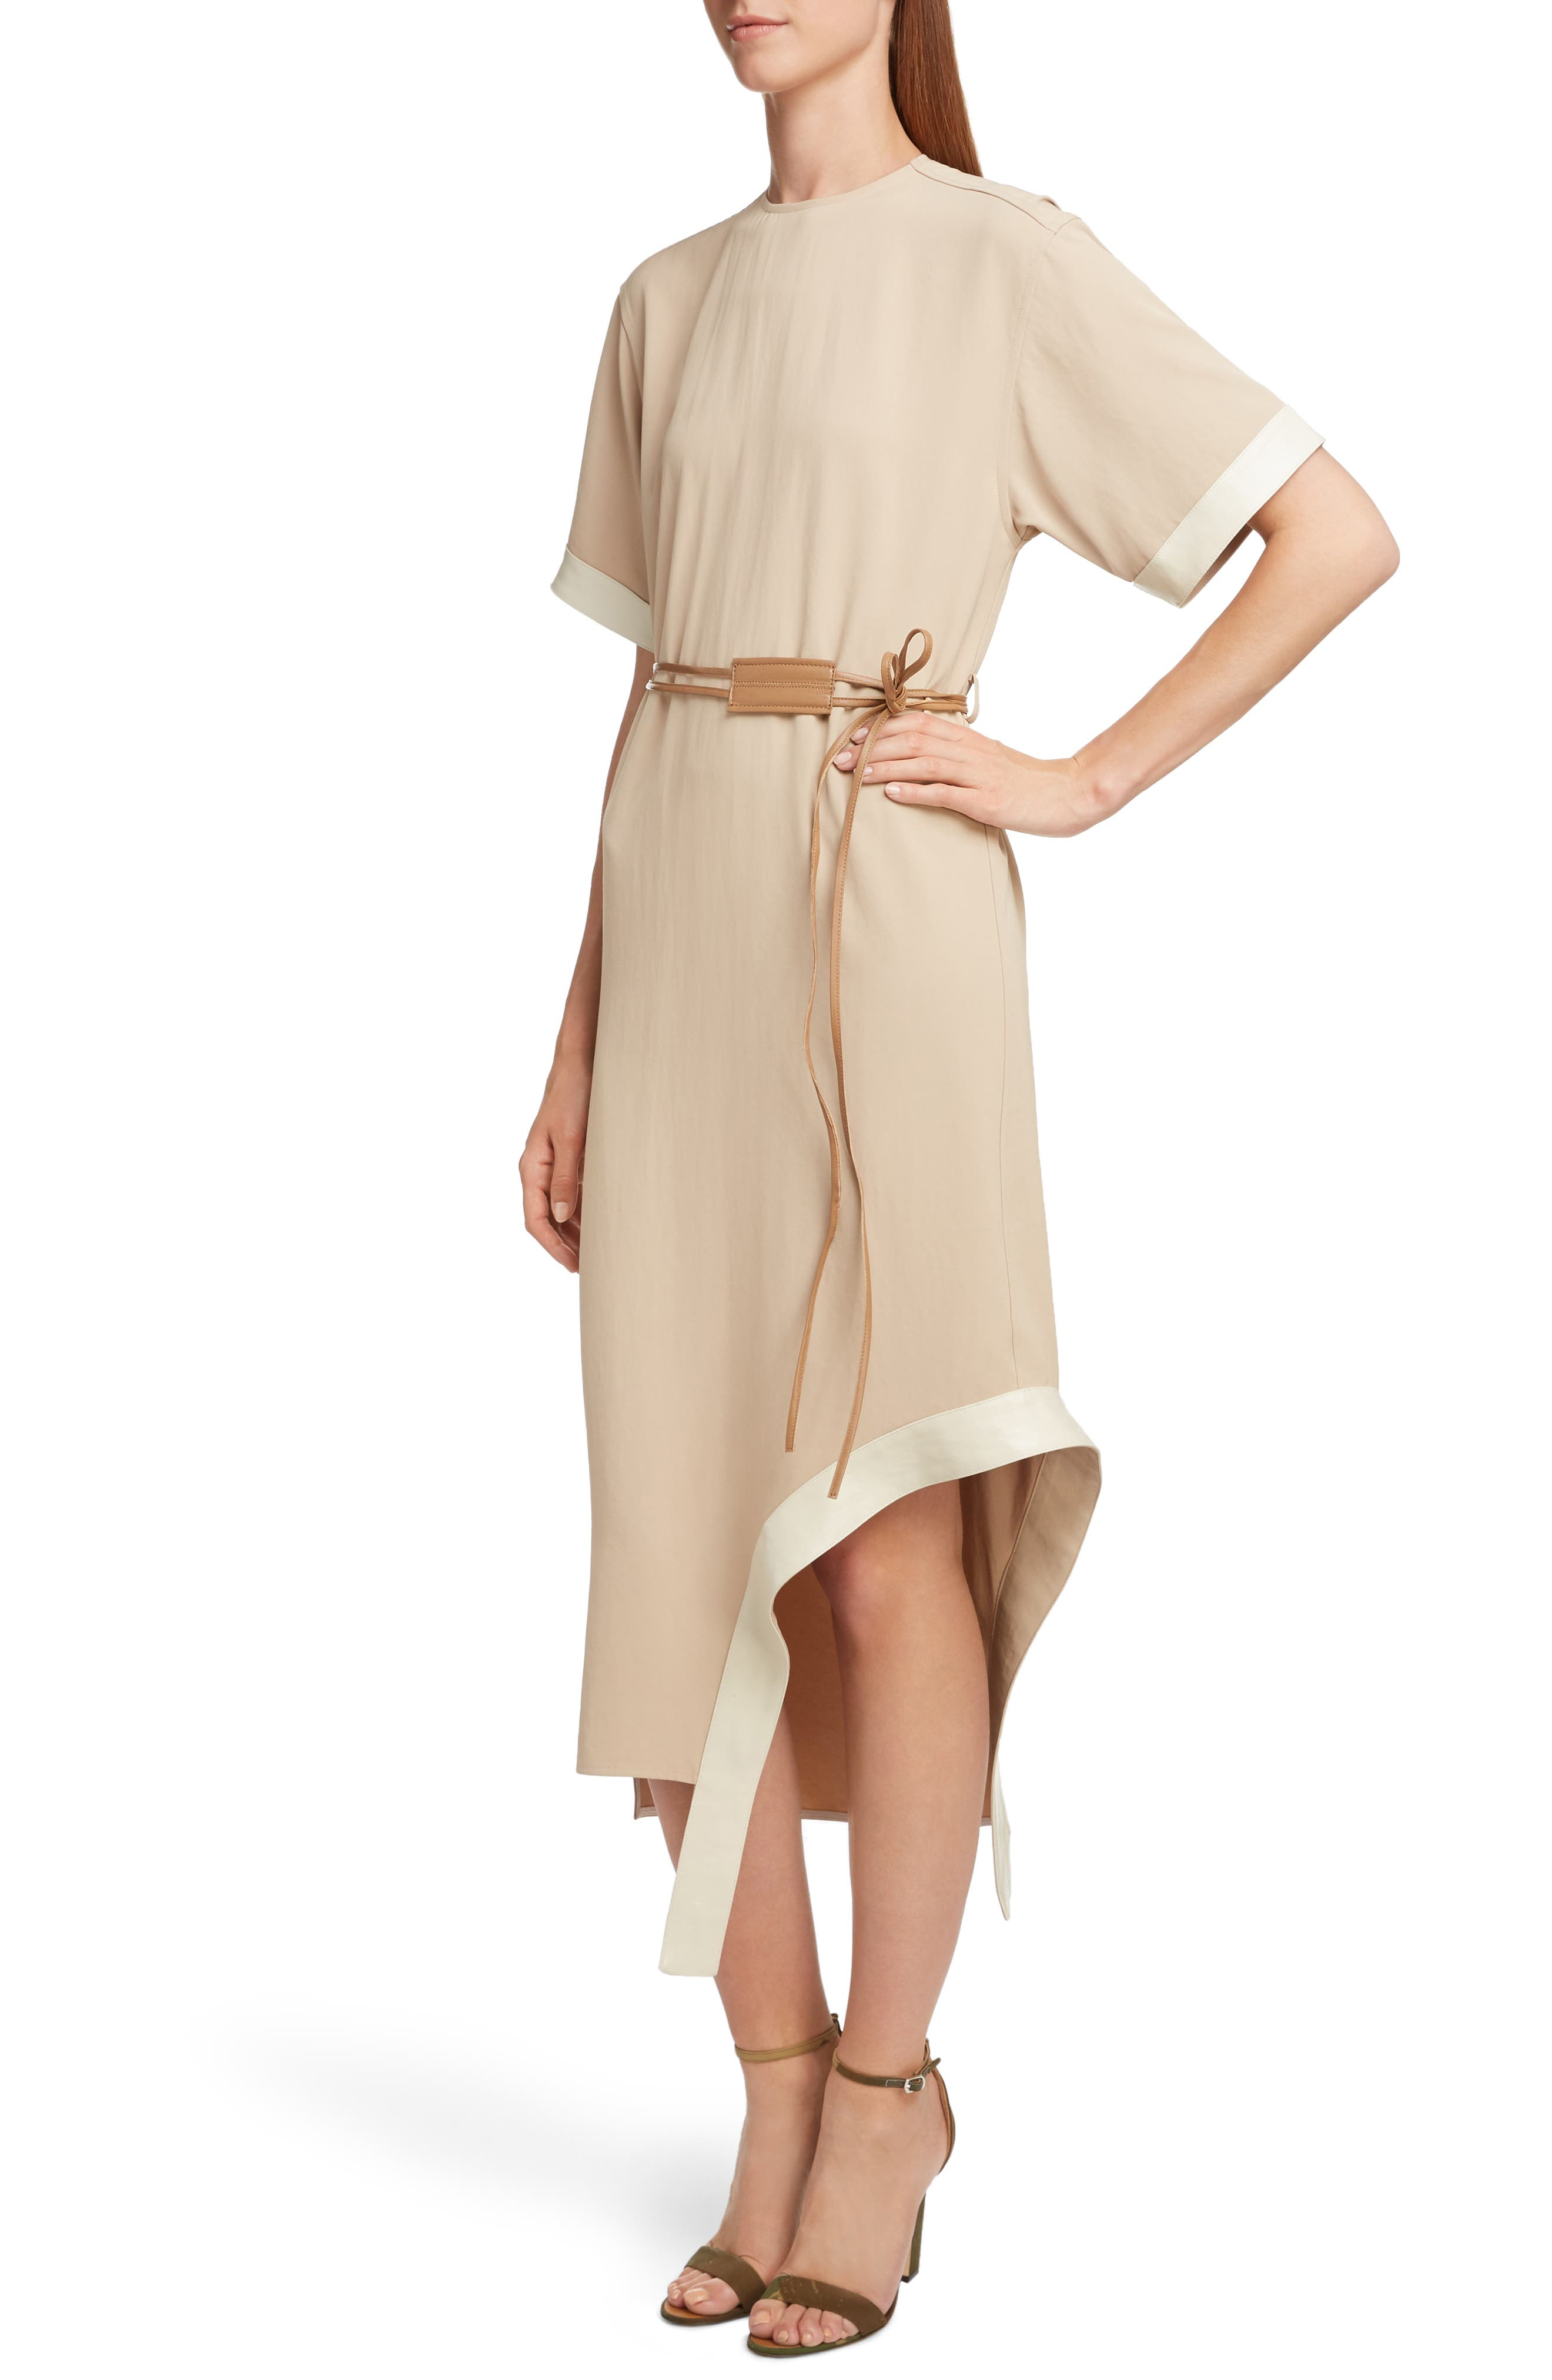 VICTORIA BECKHAM, Leather Belt Asymmetrical Dress, Alternate thumbnail 4, color, BEIGE/ CAMEL